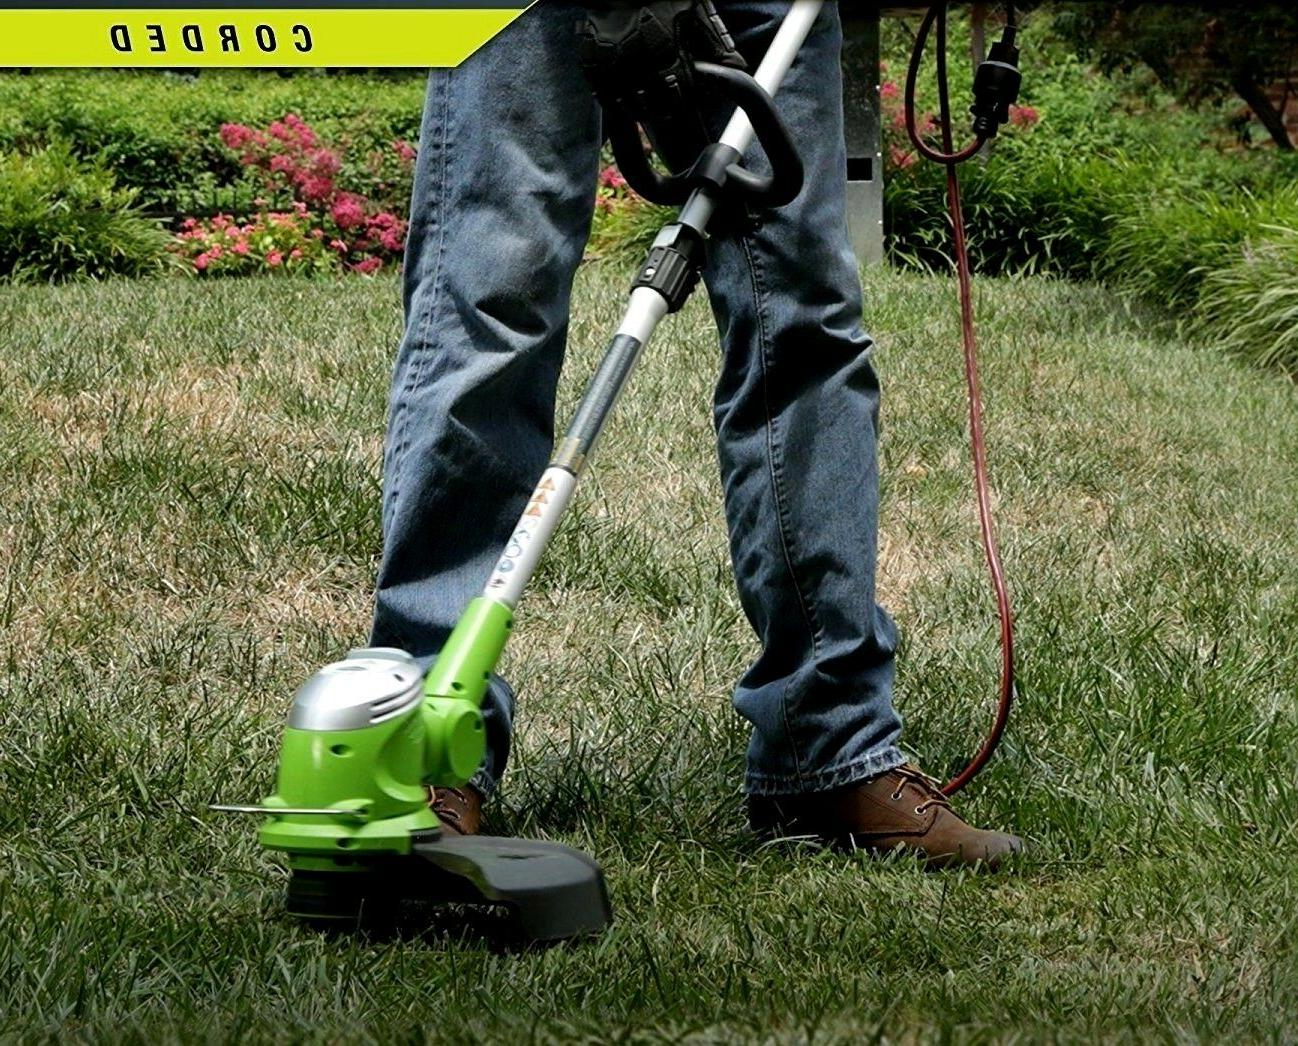 new electric grass trimmer patio yard 5